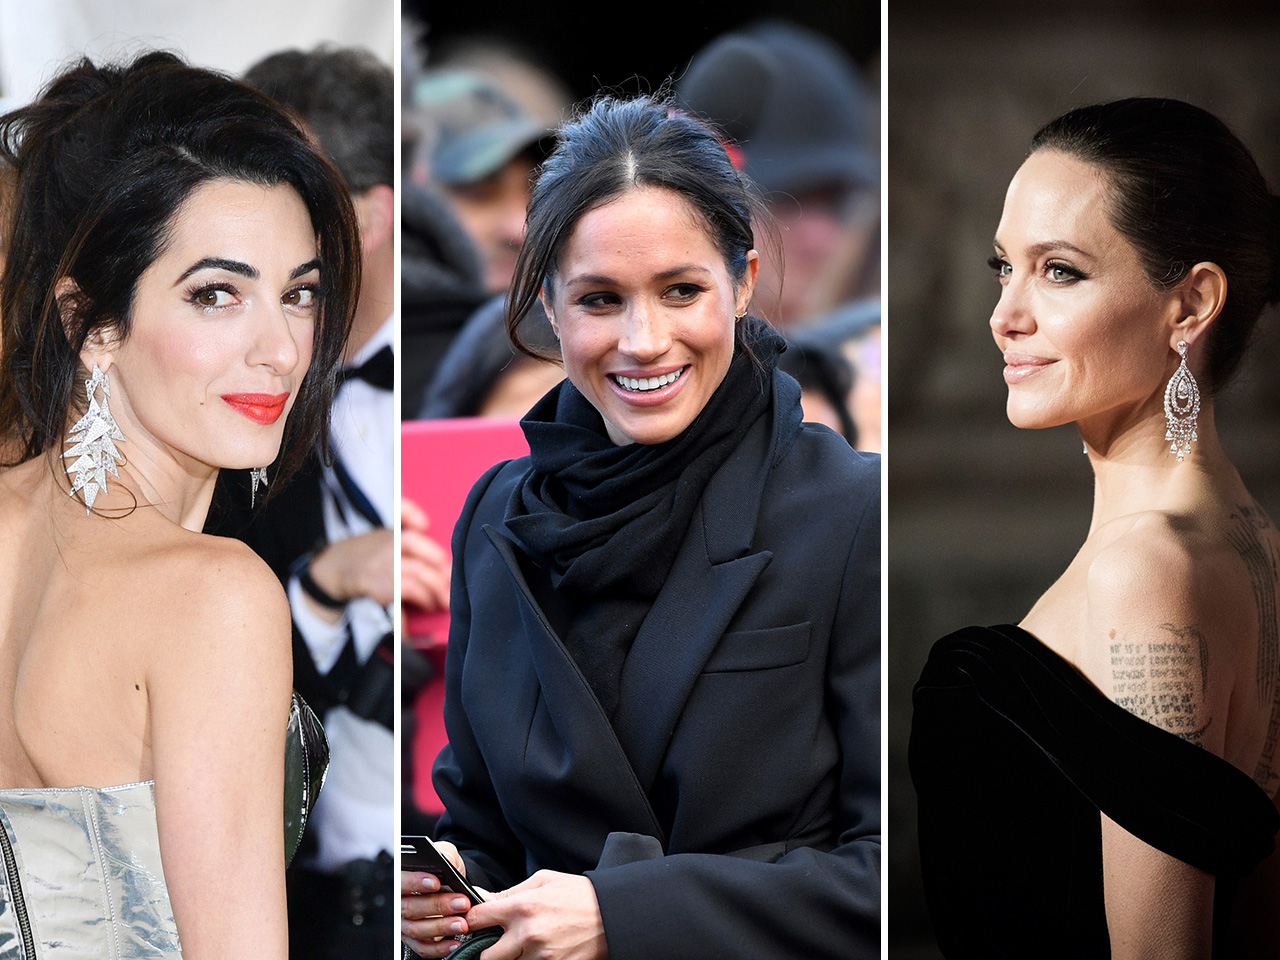 Is Meghan Markle At The Centre Of A Feud Between Amal Clooney And Angelina Jolie?